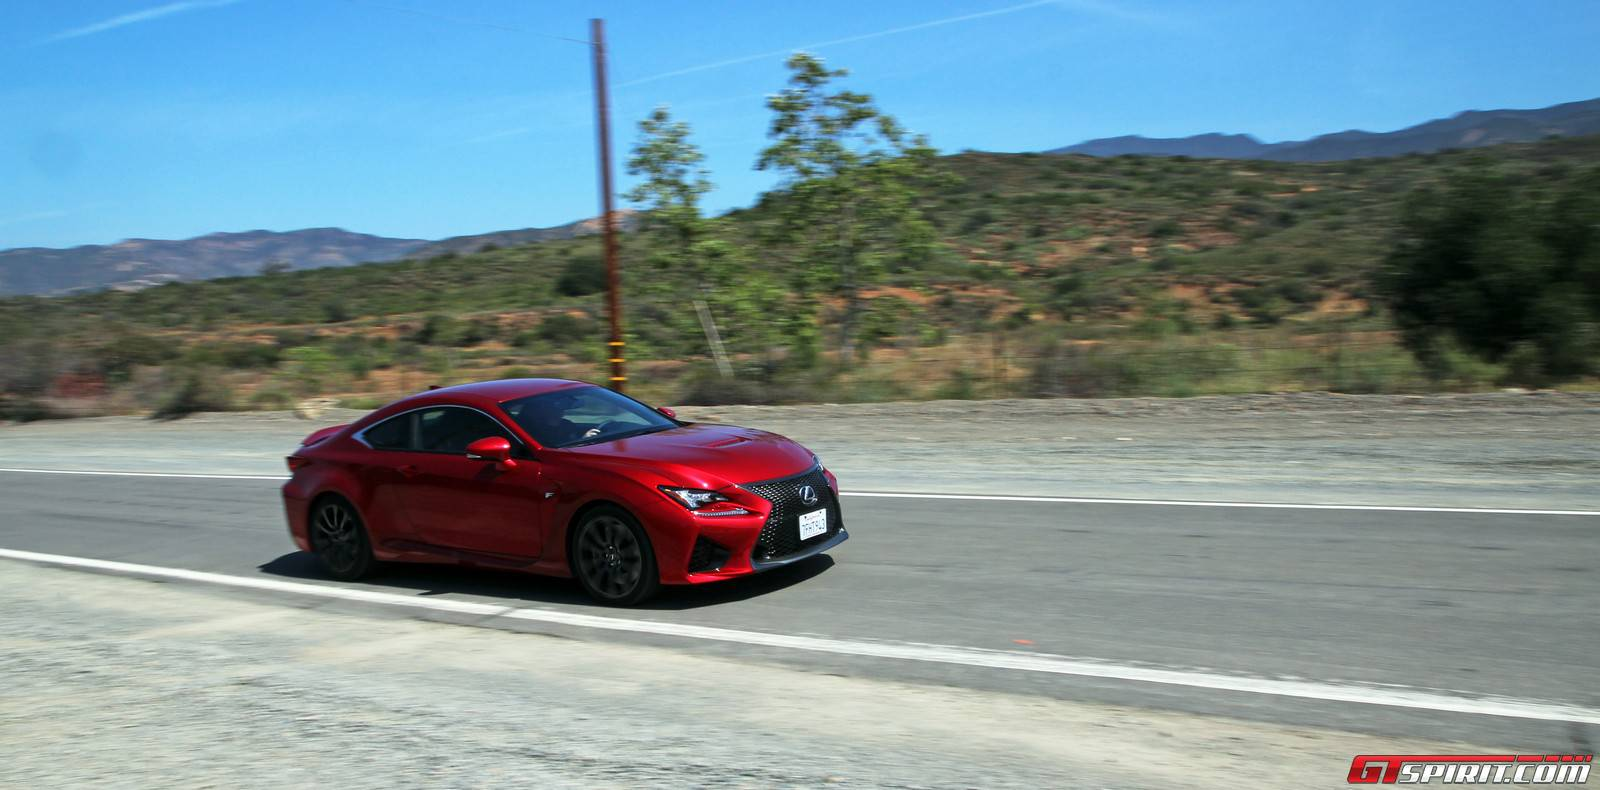 2015 Lexus RC F Review Part 2 - 20 photos - GTspirit: gtspirit.com/122370/gallery/15097/220329